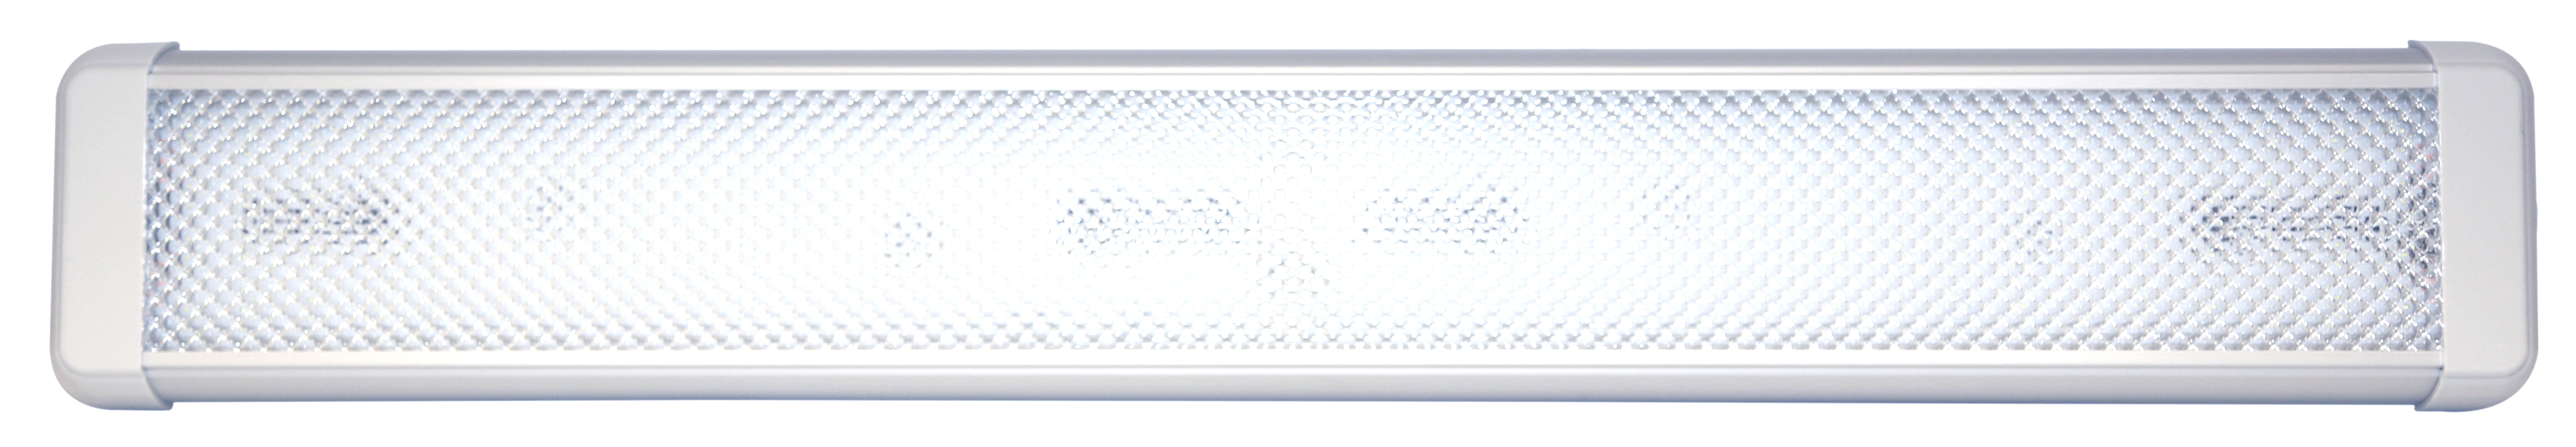 LED Beleuchtung Serie 600 Länge 635mm